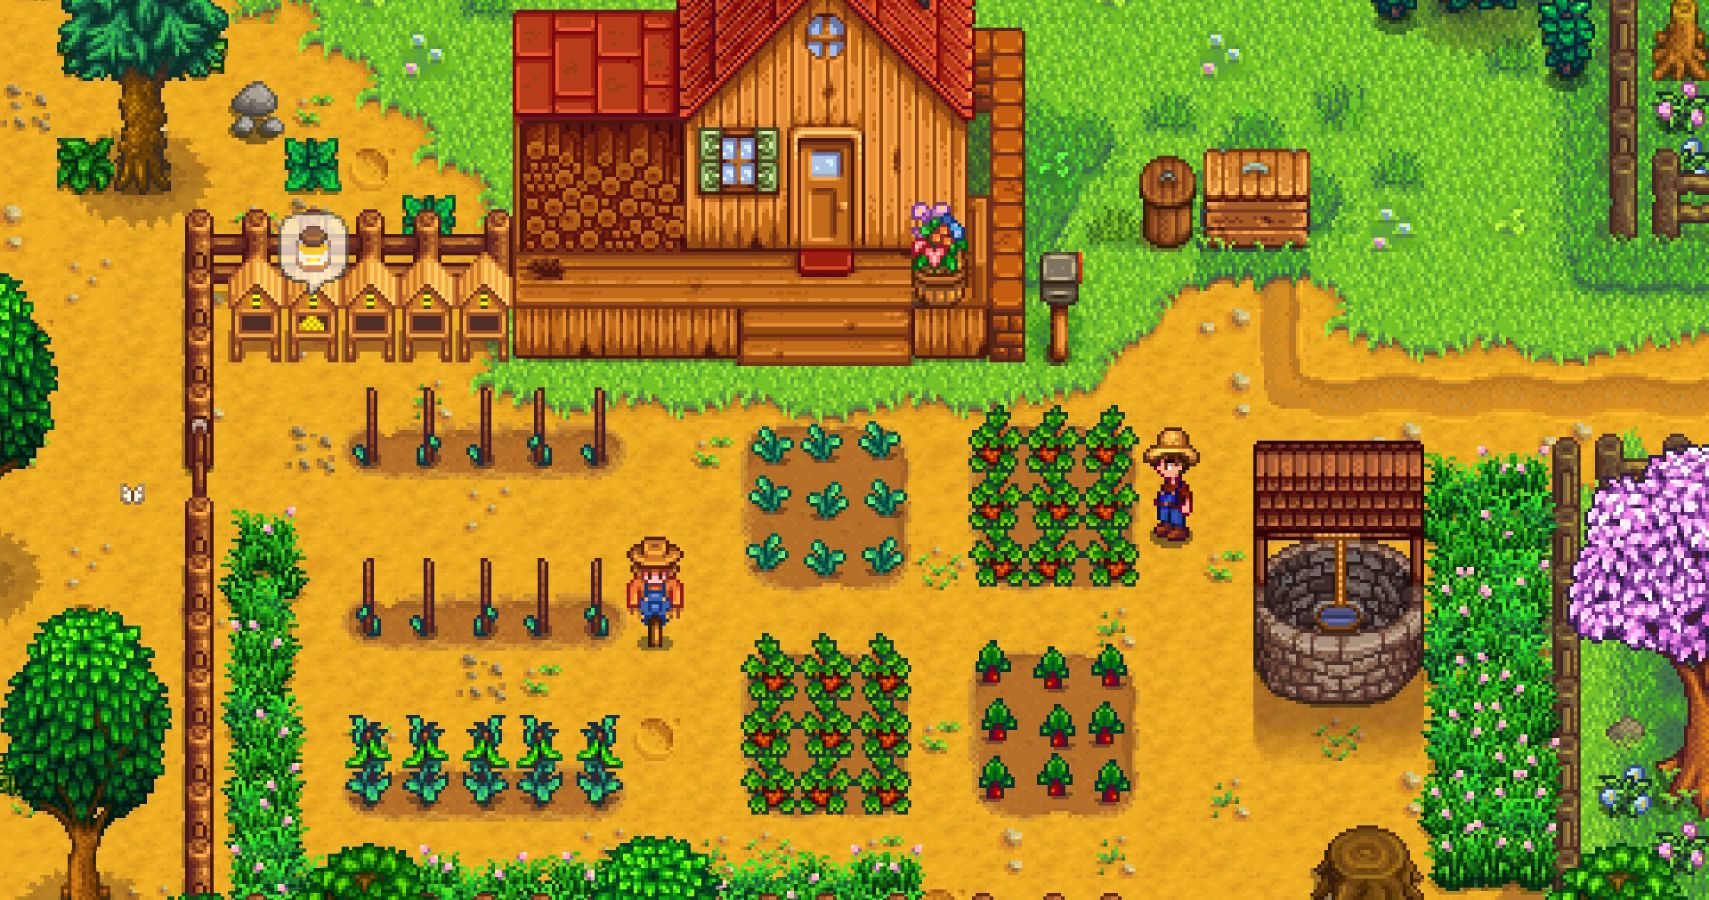 5 Best Crops In Stardew Valley The 5 Worst Thegamer You've inherited your grandfather's old farm plot in stardew valley. 5 best crops in stardew valley the 5